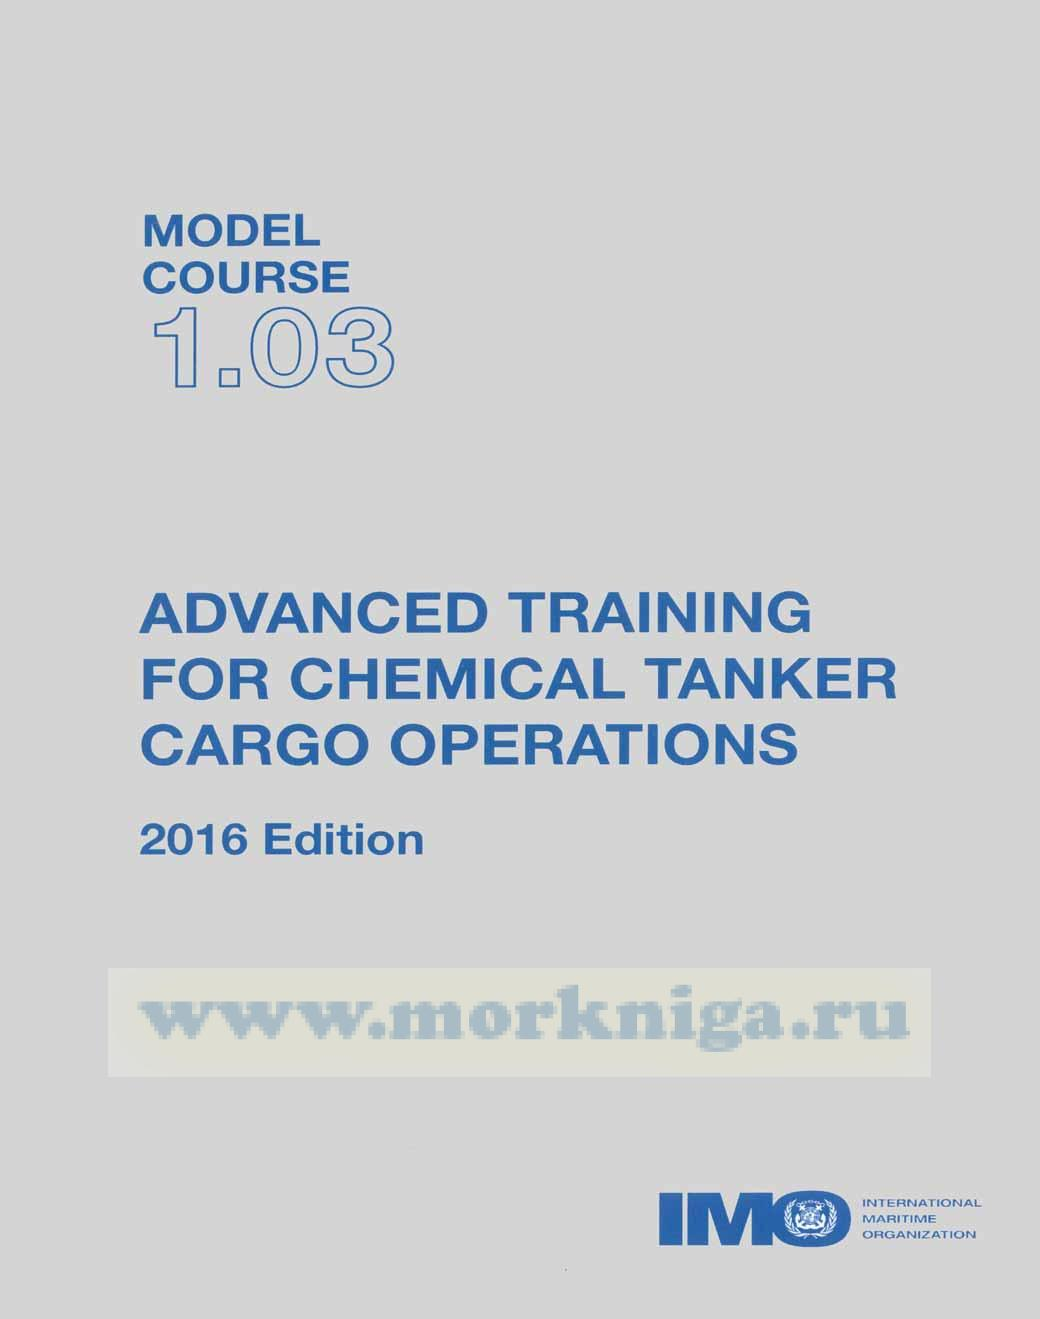 Advanced training for chemical tanker cargo operations. Model course 1.03. 2016 Edition